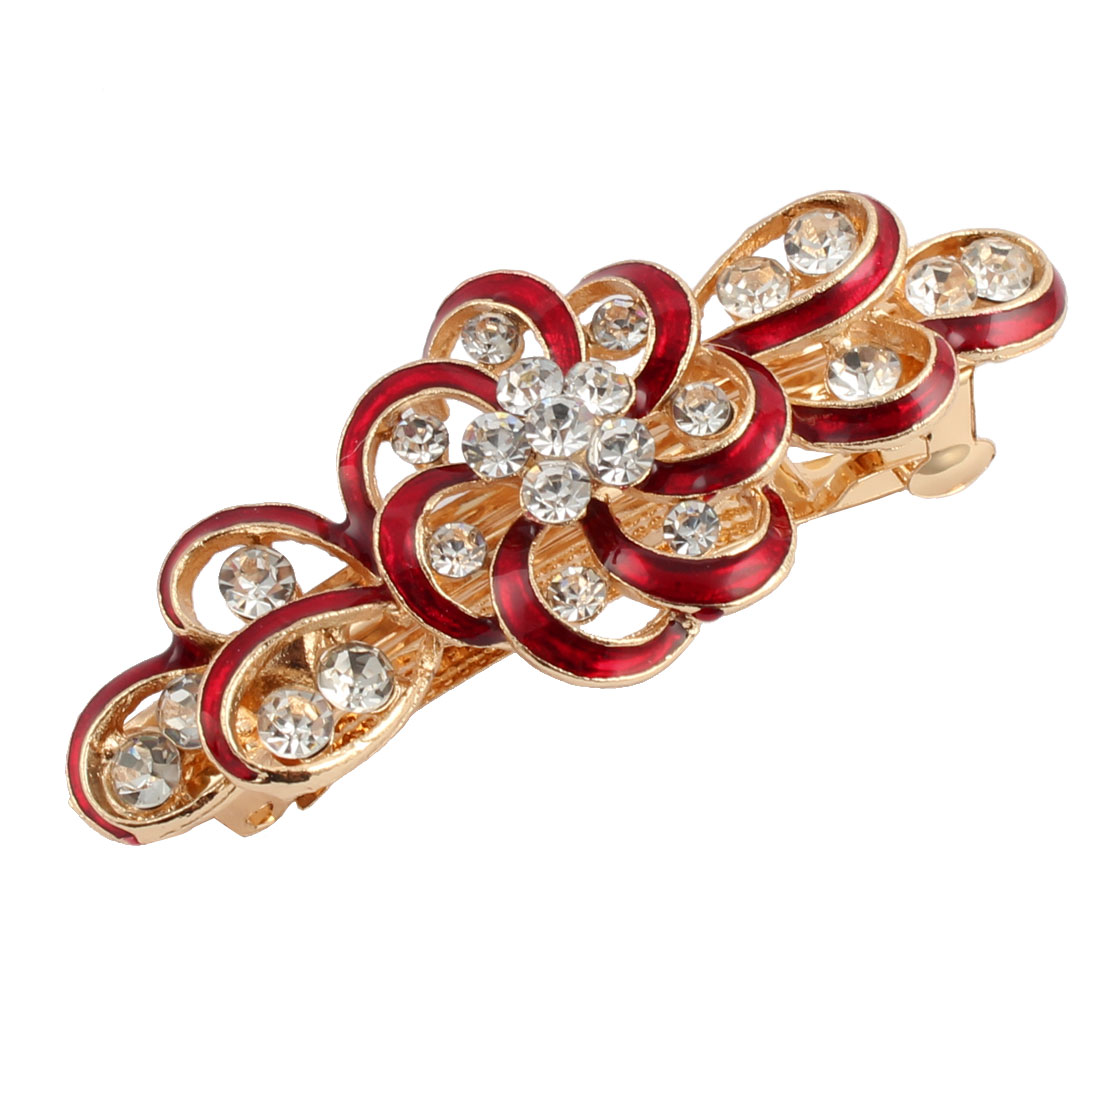 Women Metal Swirl Floral Design Hairstyle French Hair Clip Barrette Red